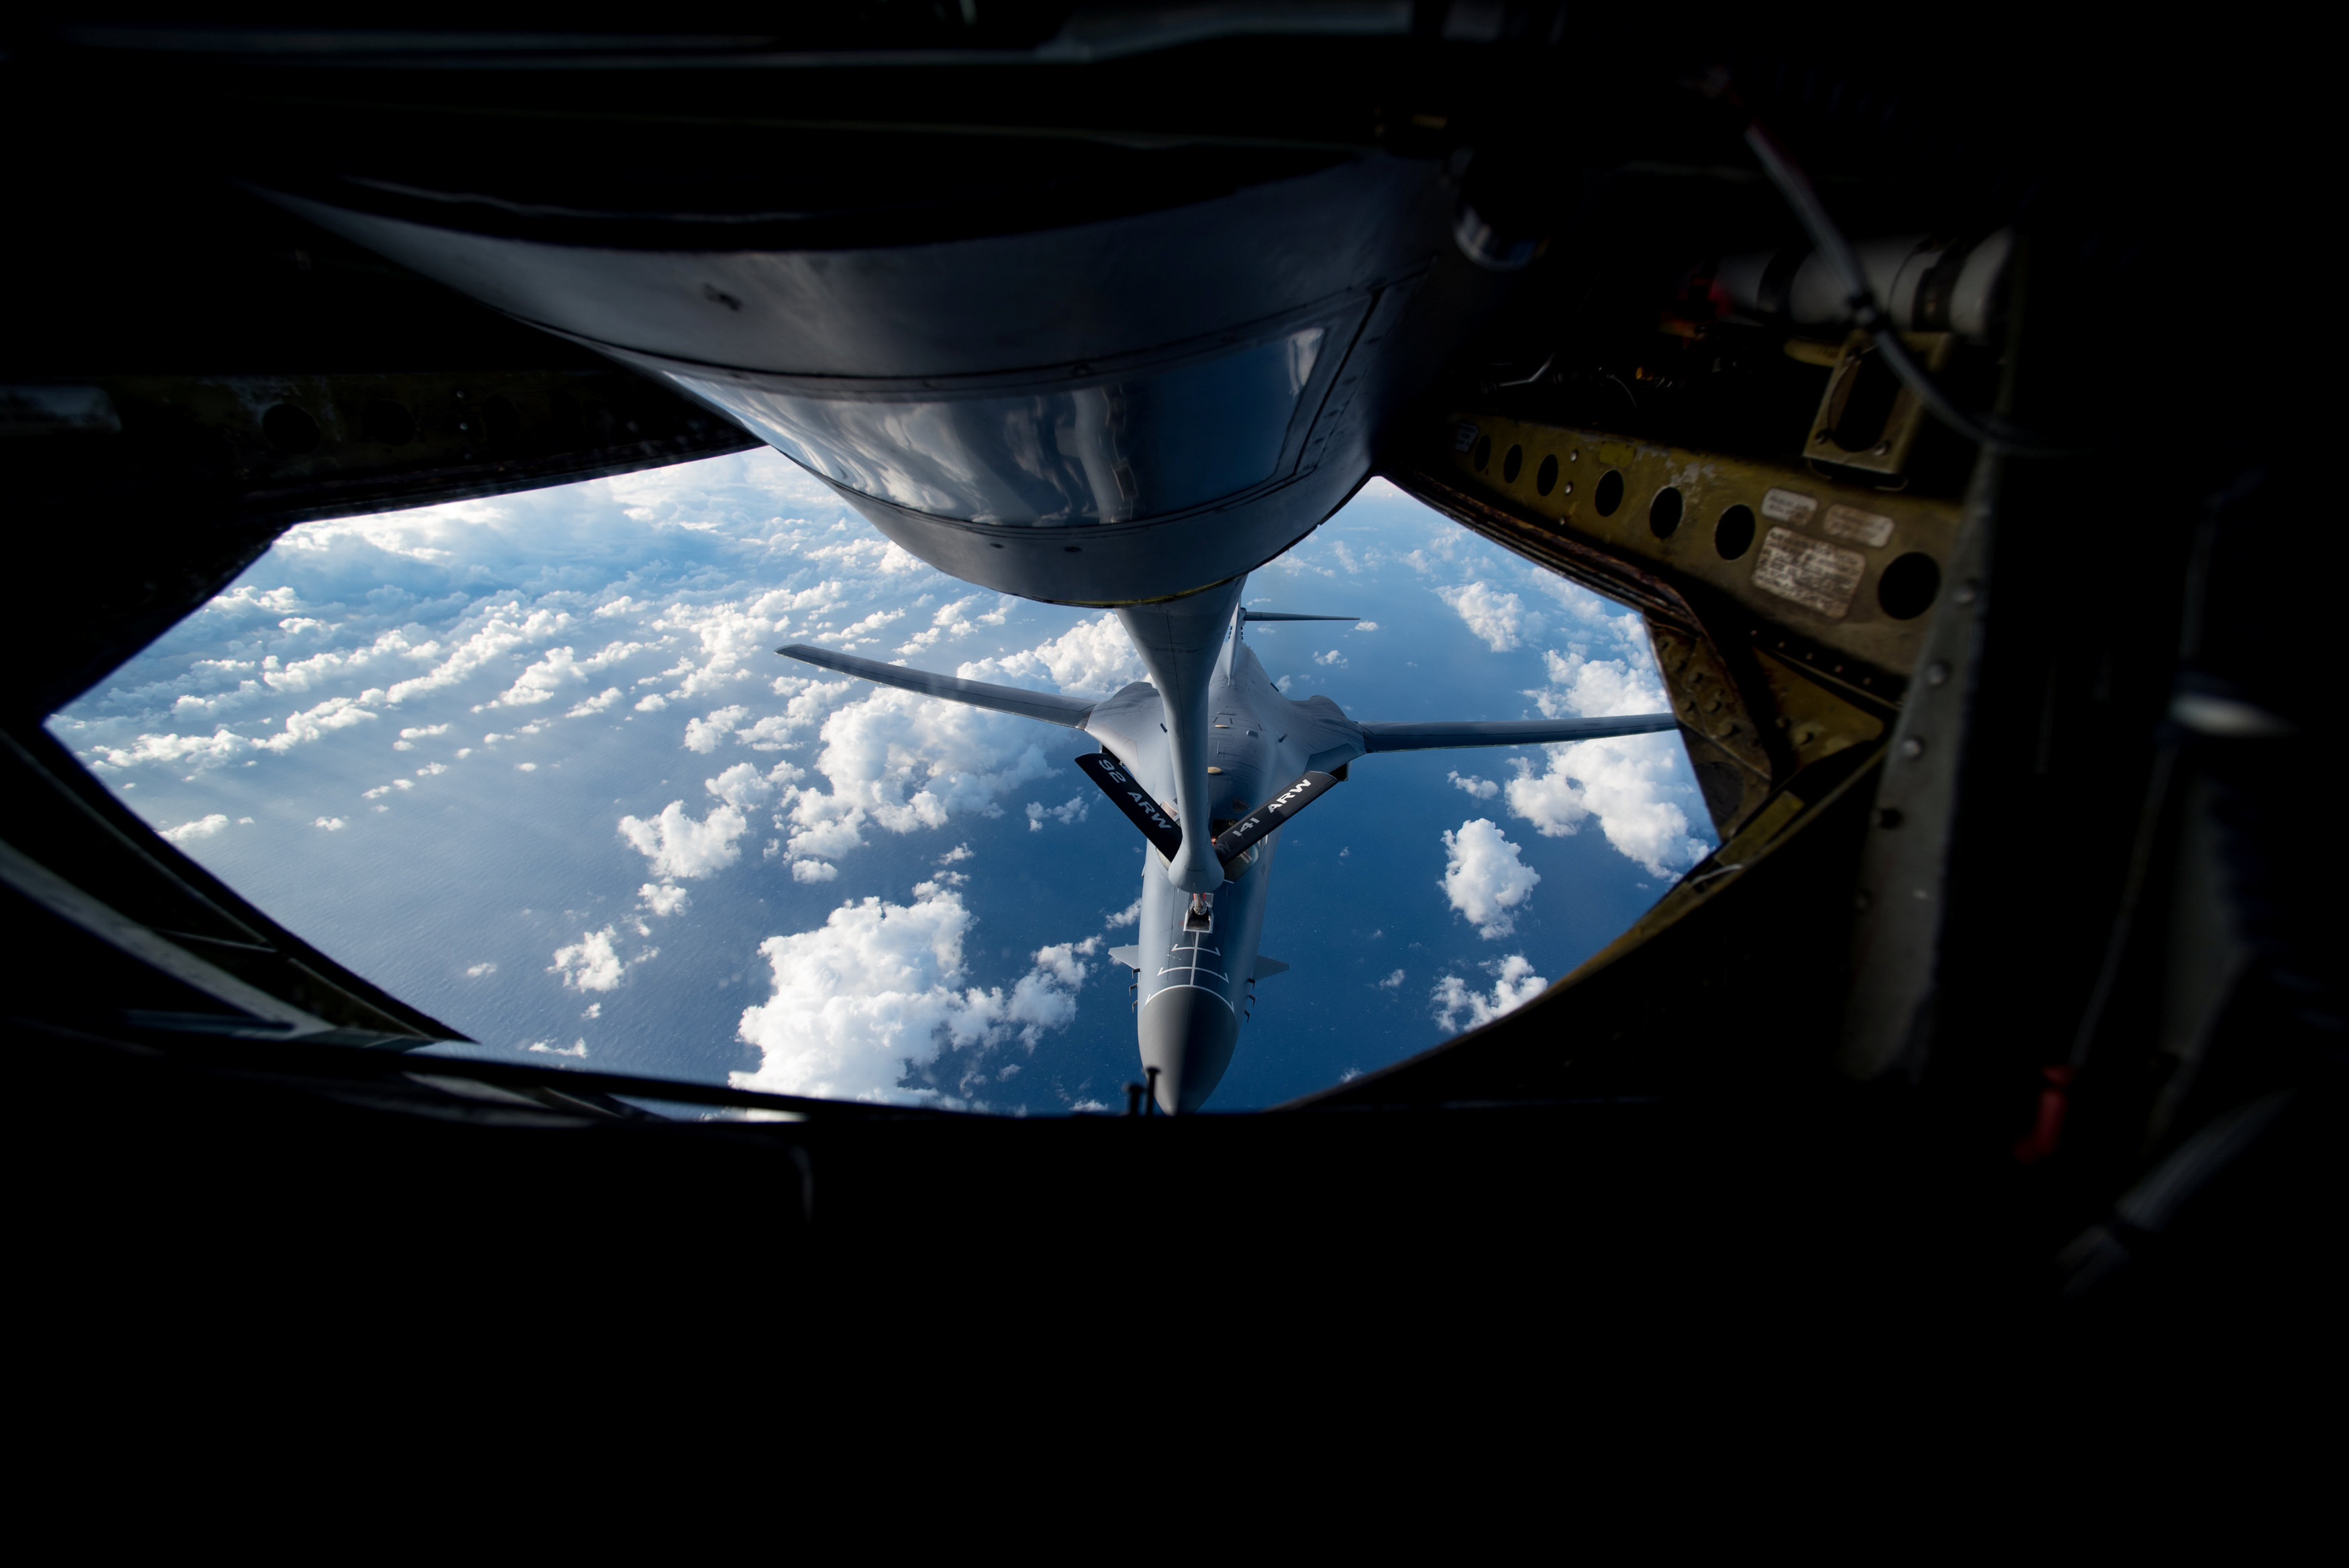 A U.S. Air Force B-1B Lancer receives fuel from a KC-135 Stratotanker during a 10-hour mission from Andersen Air Force Base, Guam, into Japanese airspace and over the Korean Peninsula on July 30, 2017. (Airman 1st Class Jacob Skovo/U.S. Air Force photo/Handout via REUTERS)